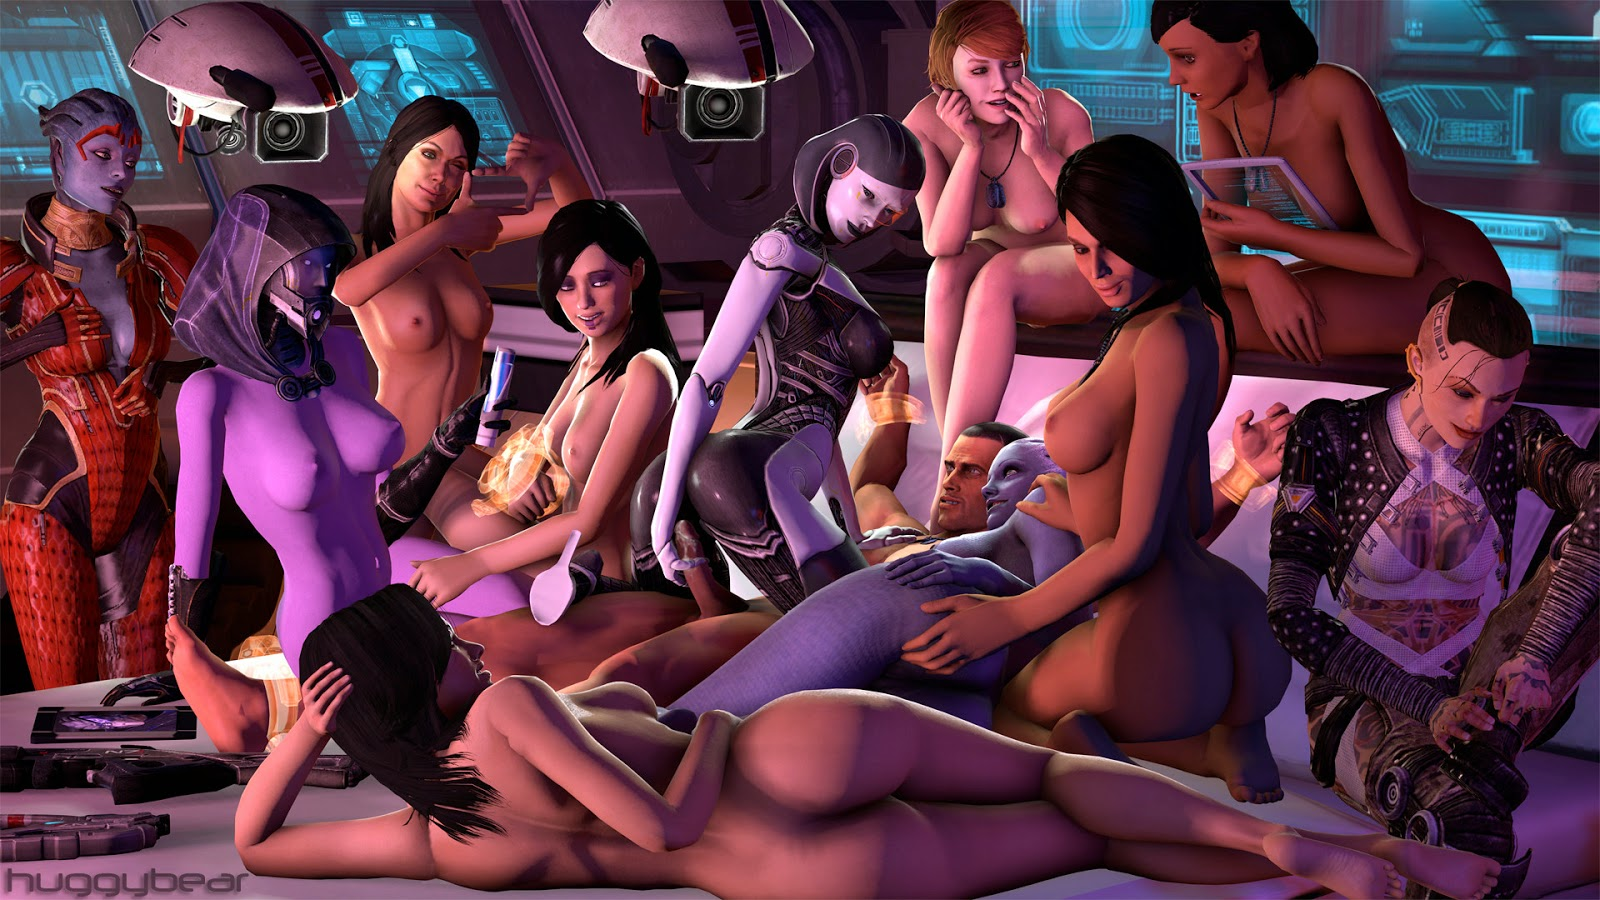 Mass effect nude